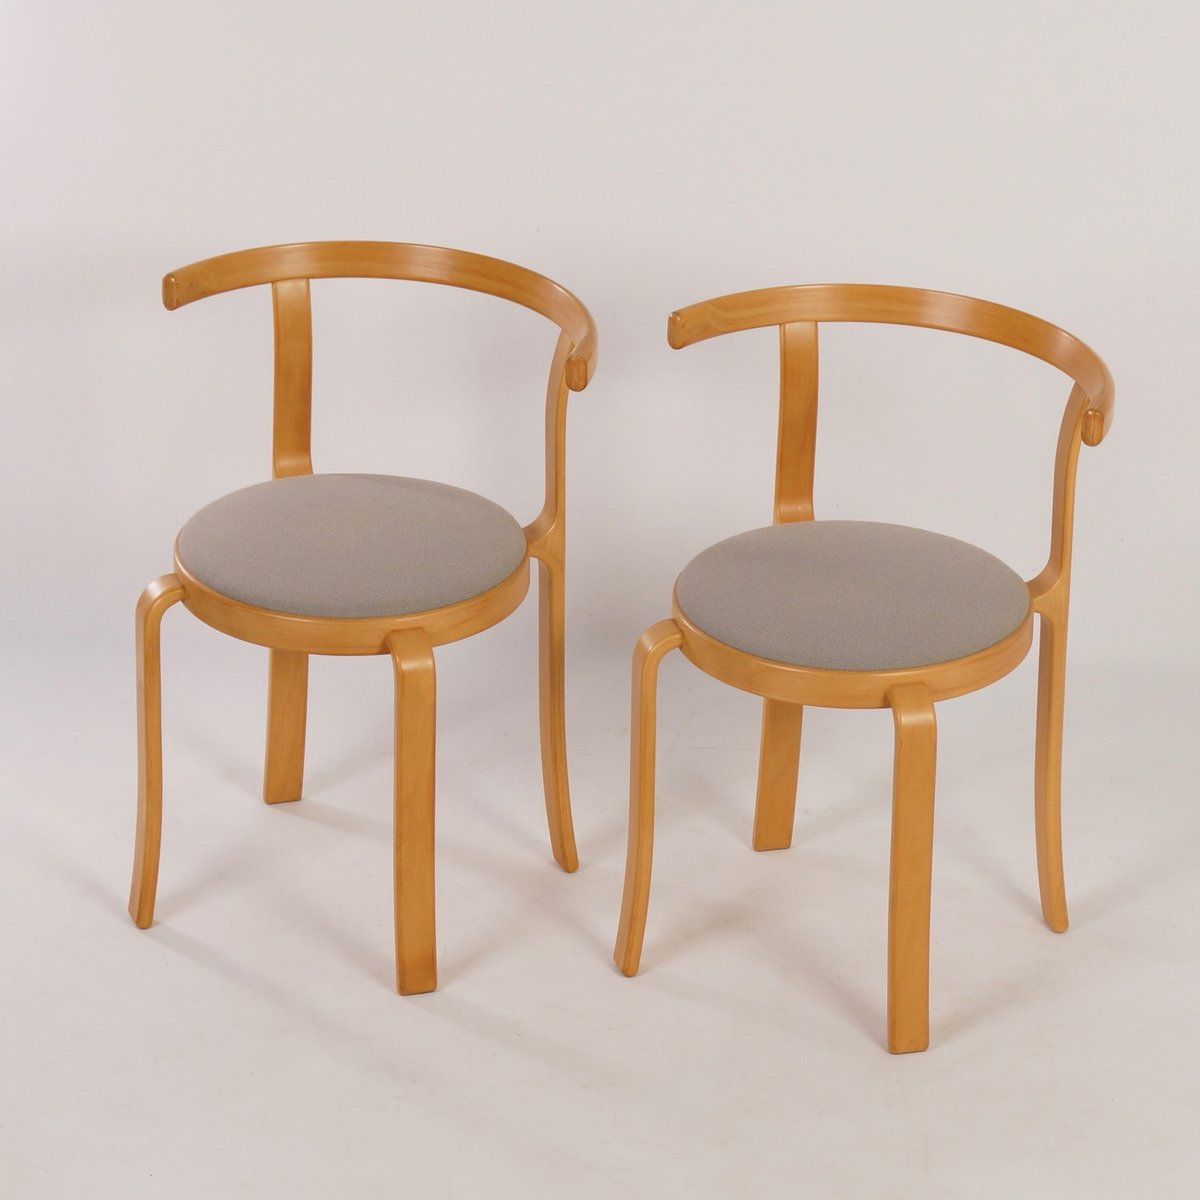 Danish dining chairs by thygsen s rensen for magnus for 1980s chair design